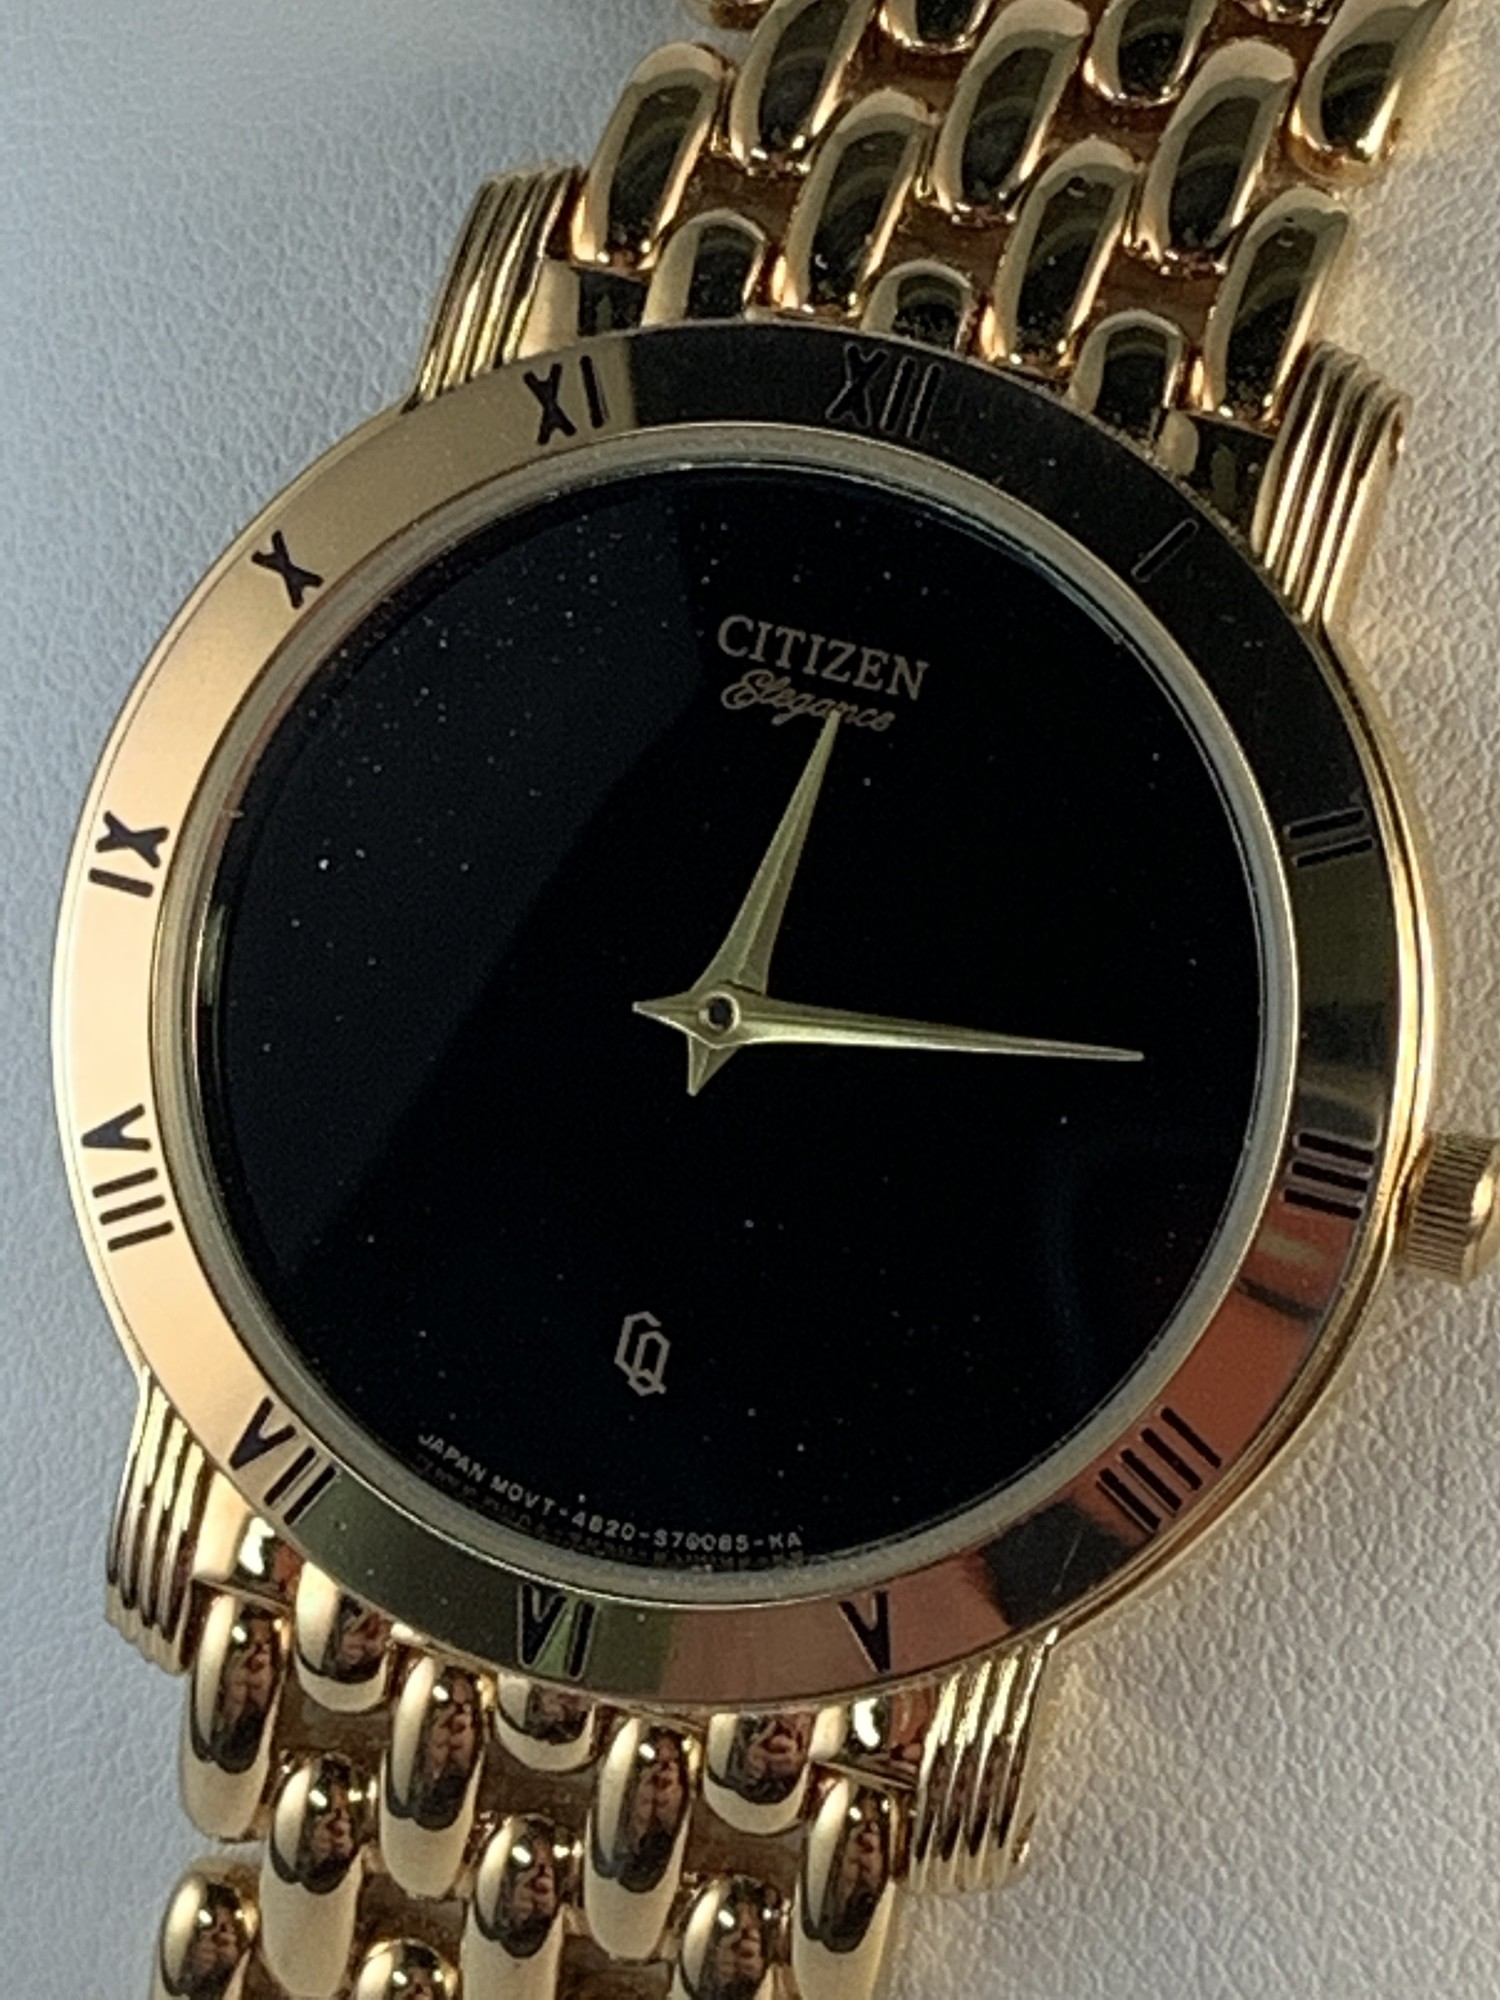 Gents Citizen Watch  * Like New<br /> Goldtone Band. Roman Numeral Bezel.<br /> Black Dial.<br /> $270